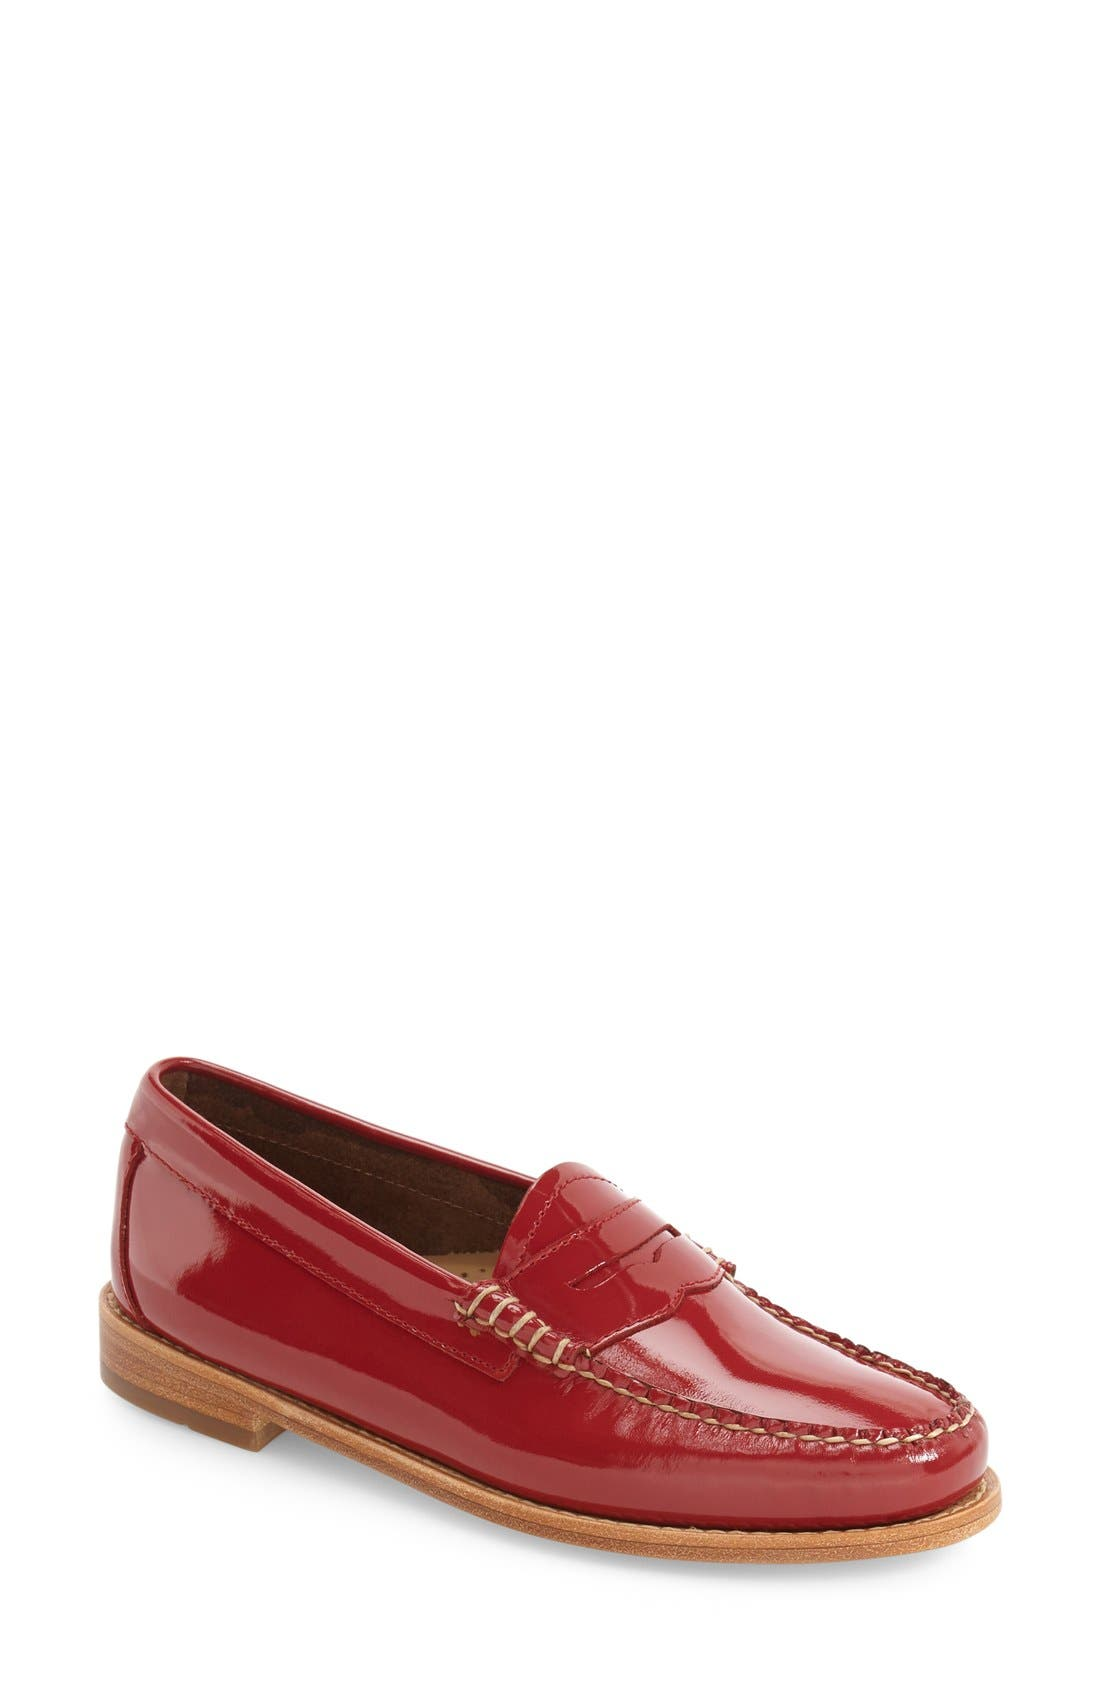 'Whitney' Loafer,                             Main thumbnail 37, color,